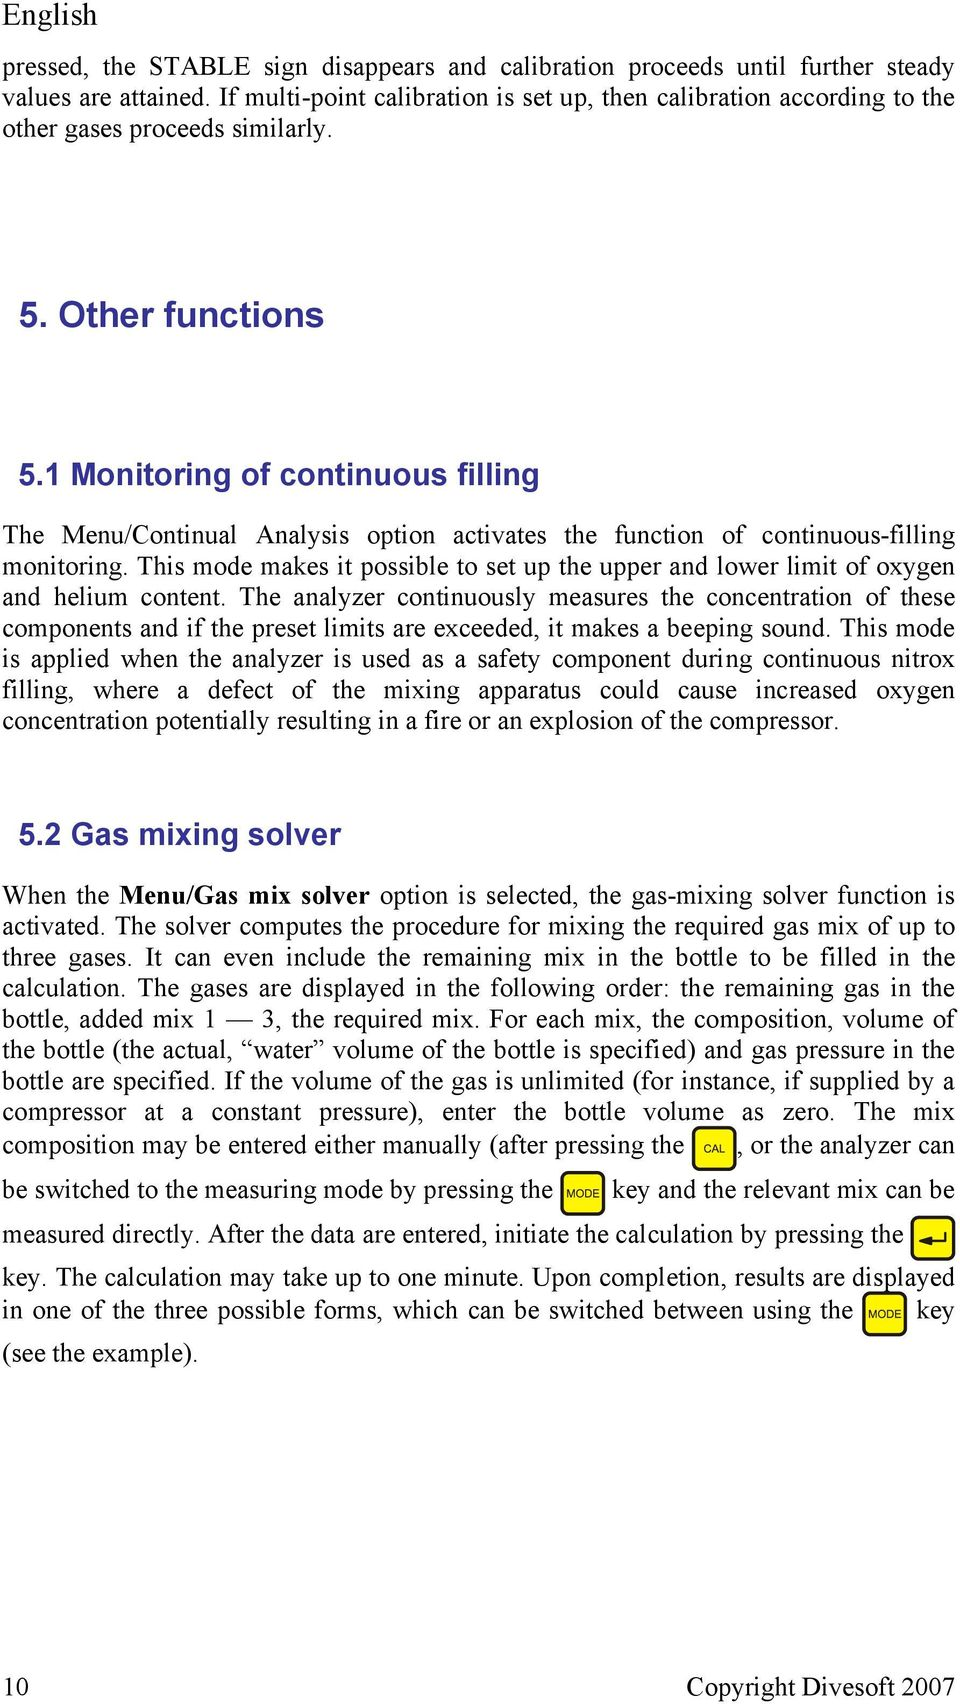 1 Monitoring of continuous filling The Menu/Continual Analysis option activates the function of continuous-filling monitoring.